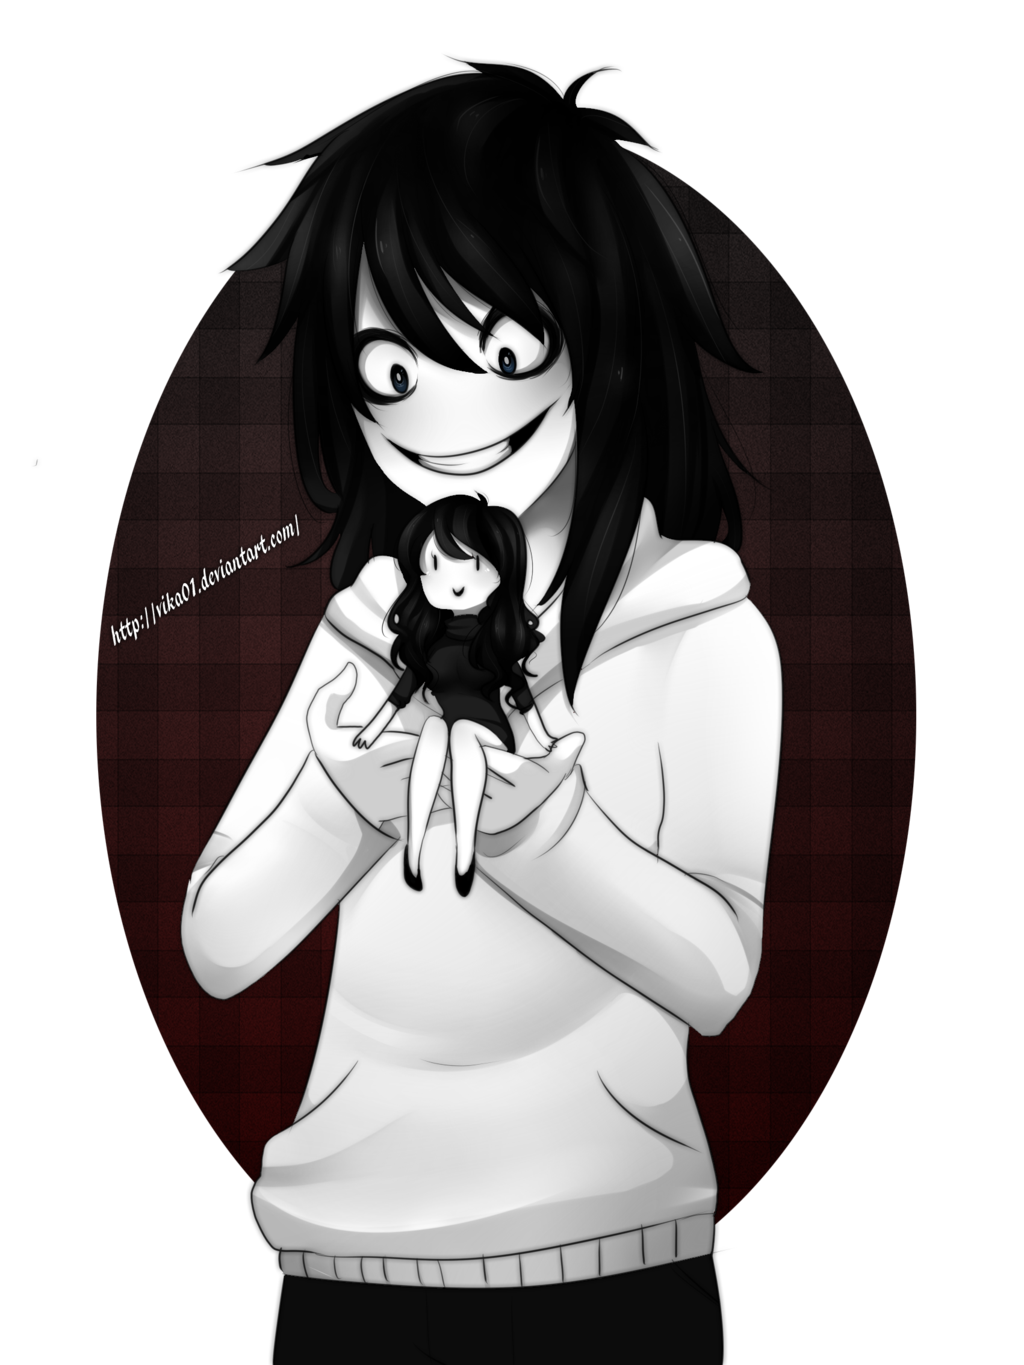 Jeff and Jane the killer and this is a better ship then gay ships -.-